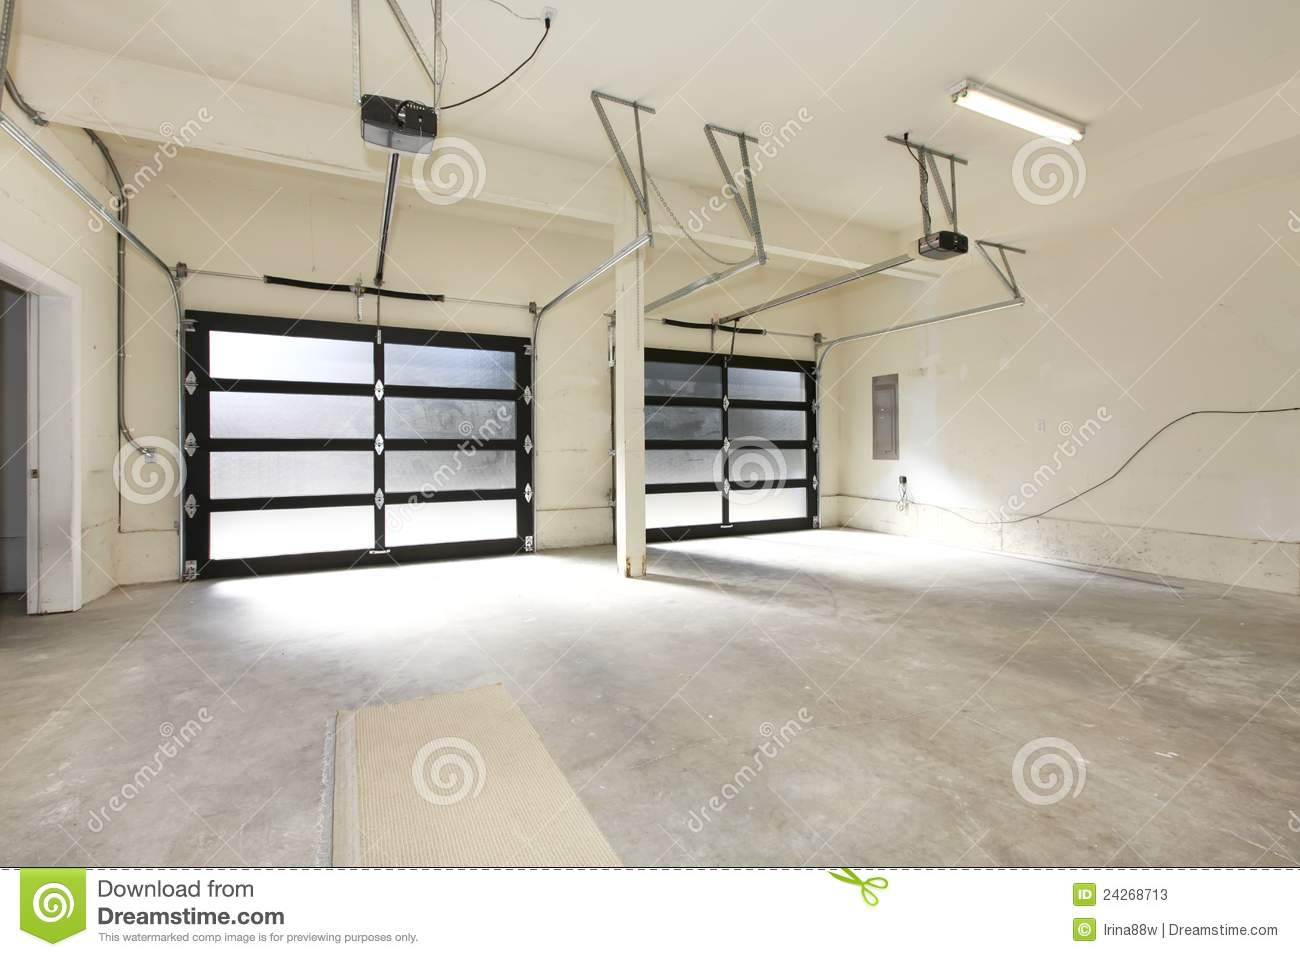 New Two Car Garage With Glass Doors Stock Image Image Of Modern